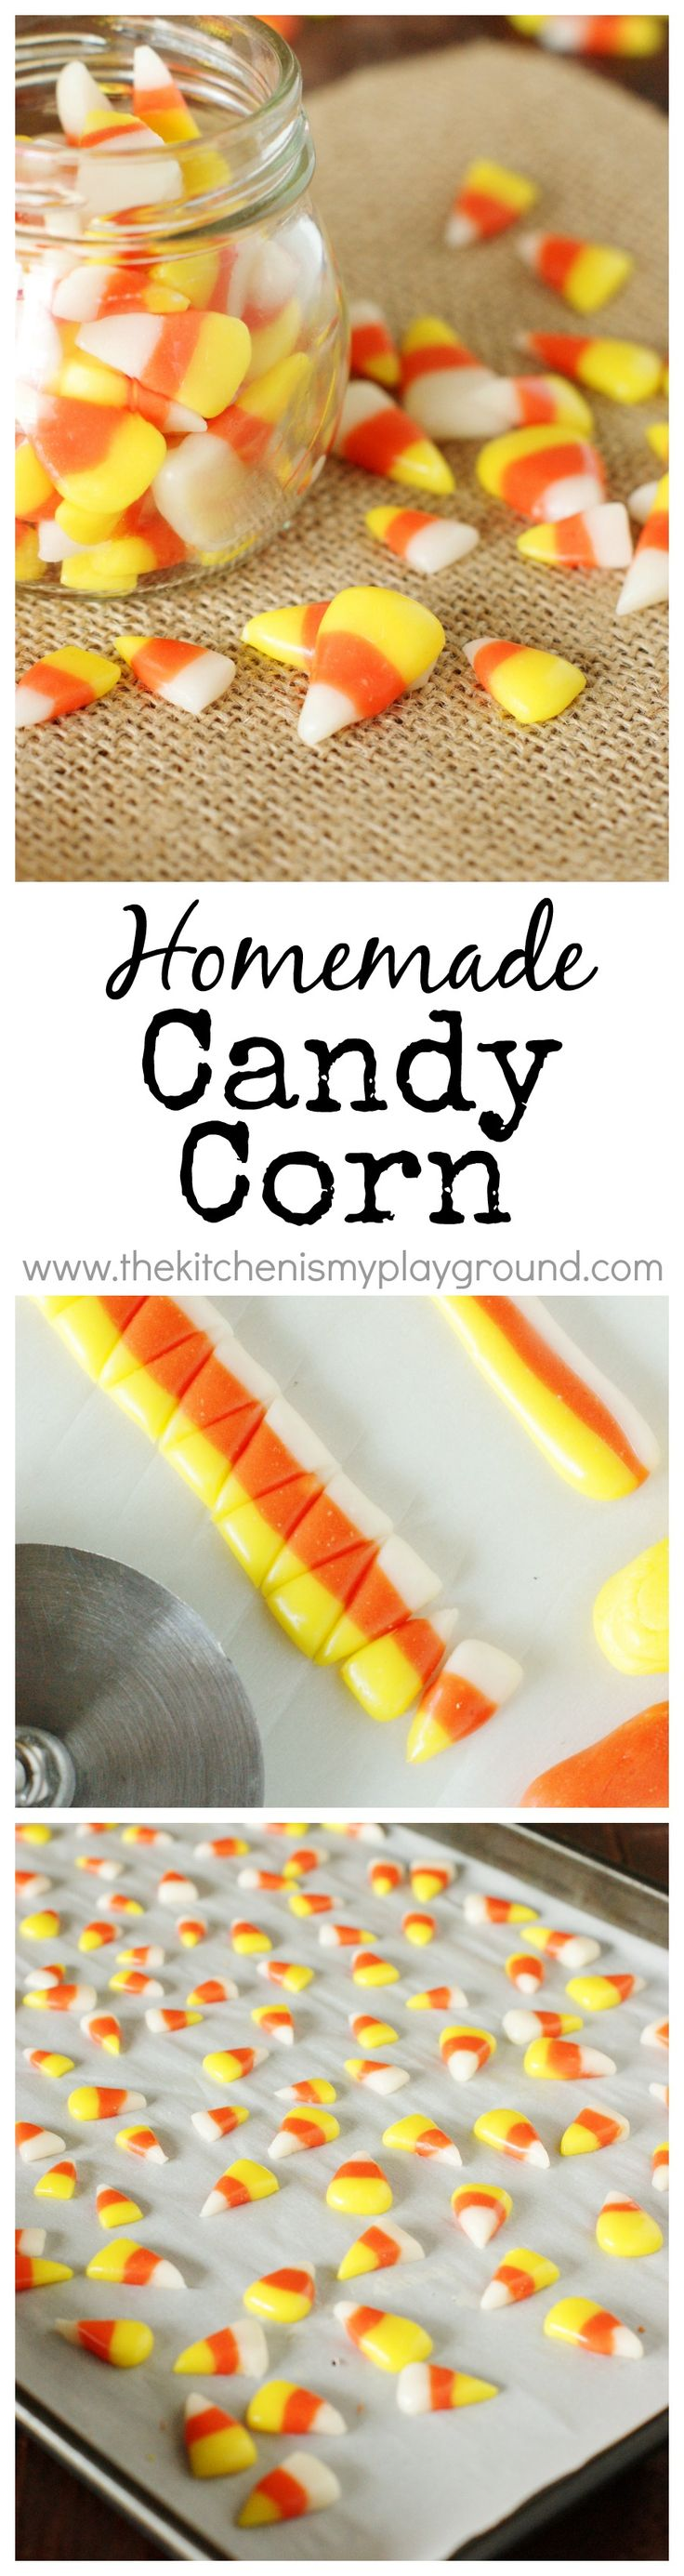 Homemade Candy Corn ~ make your very own homemade version of this iconic Halloween treat. www.thekitchenismyplayground.com